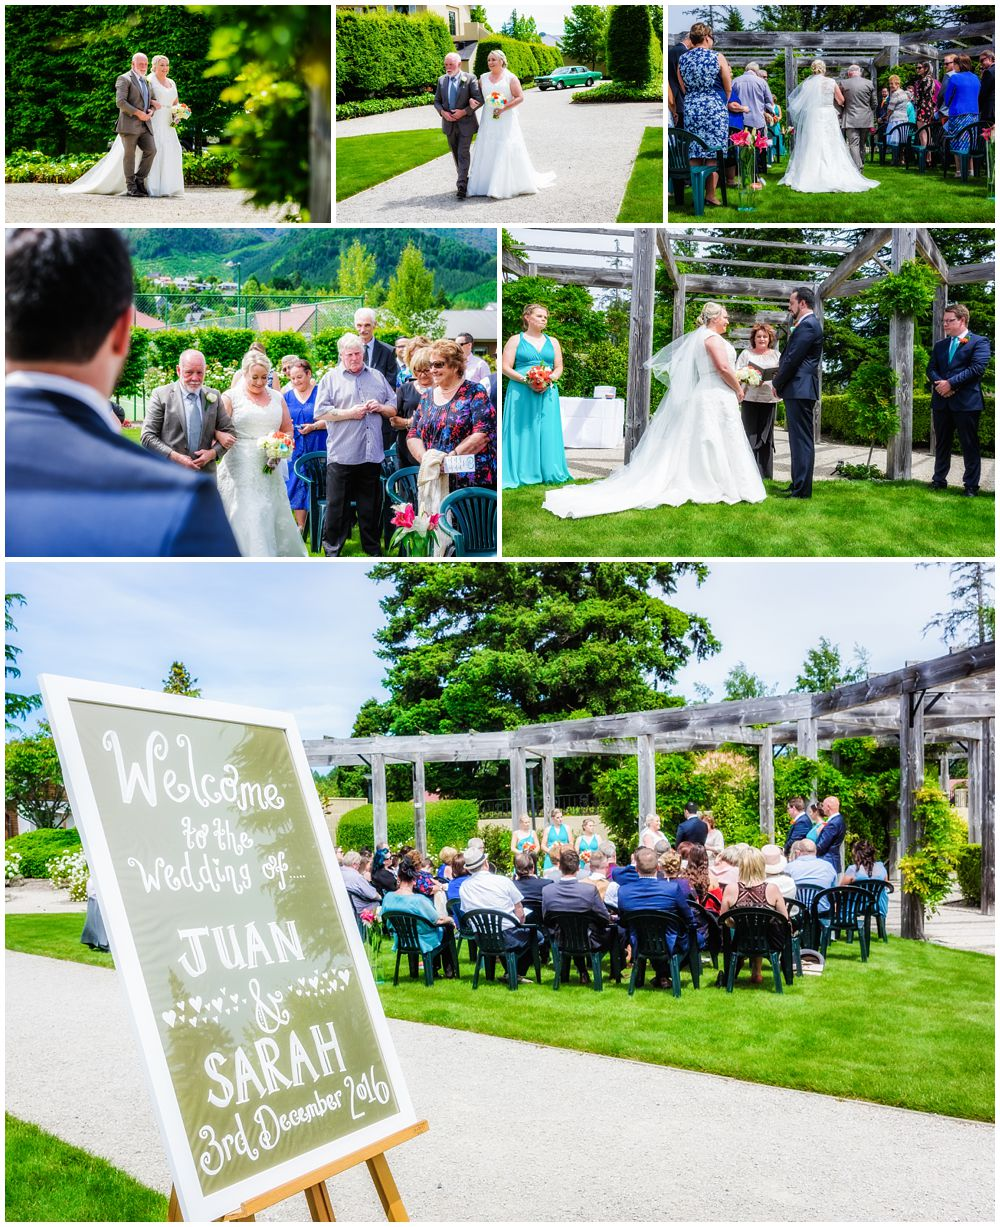 Heritage Hanmer Springs Wedding Venue ceremony in beautiful sunny weather